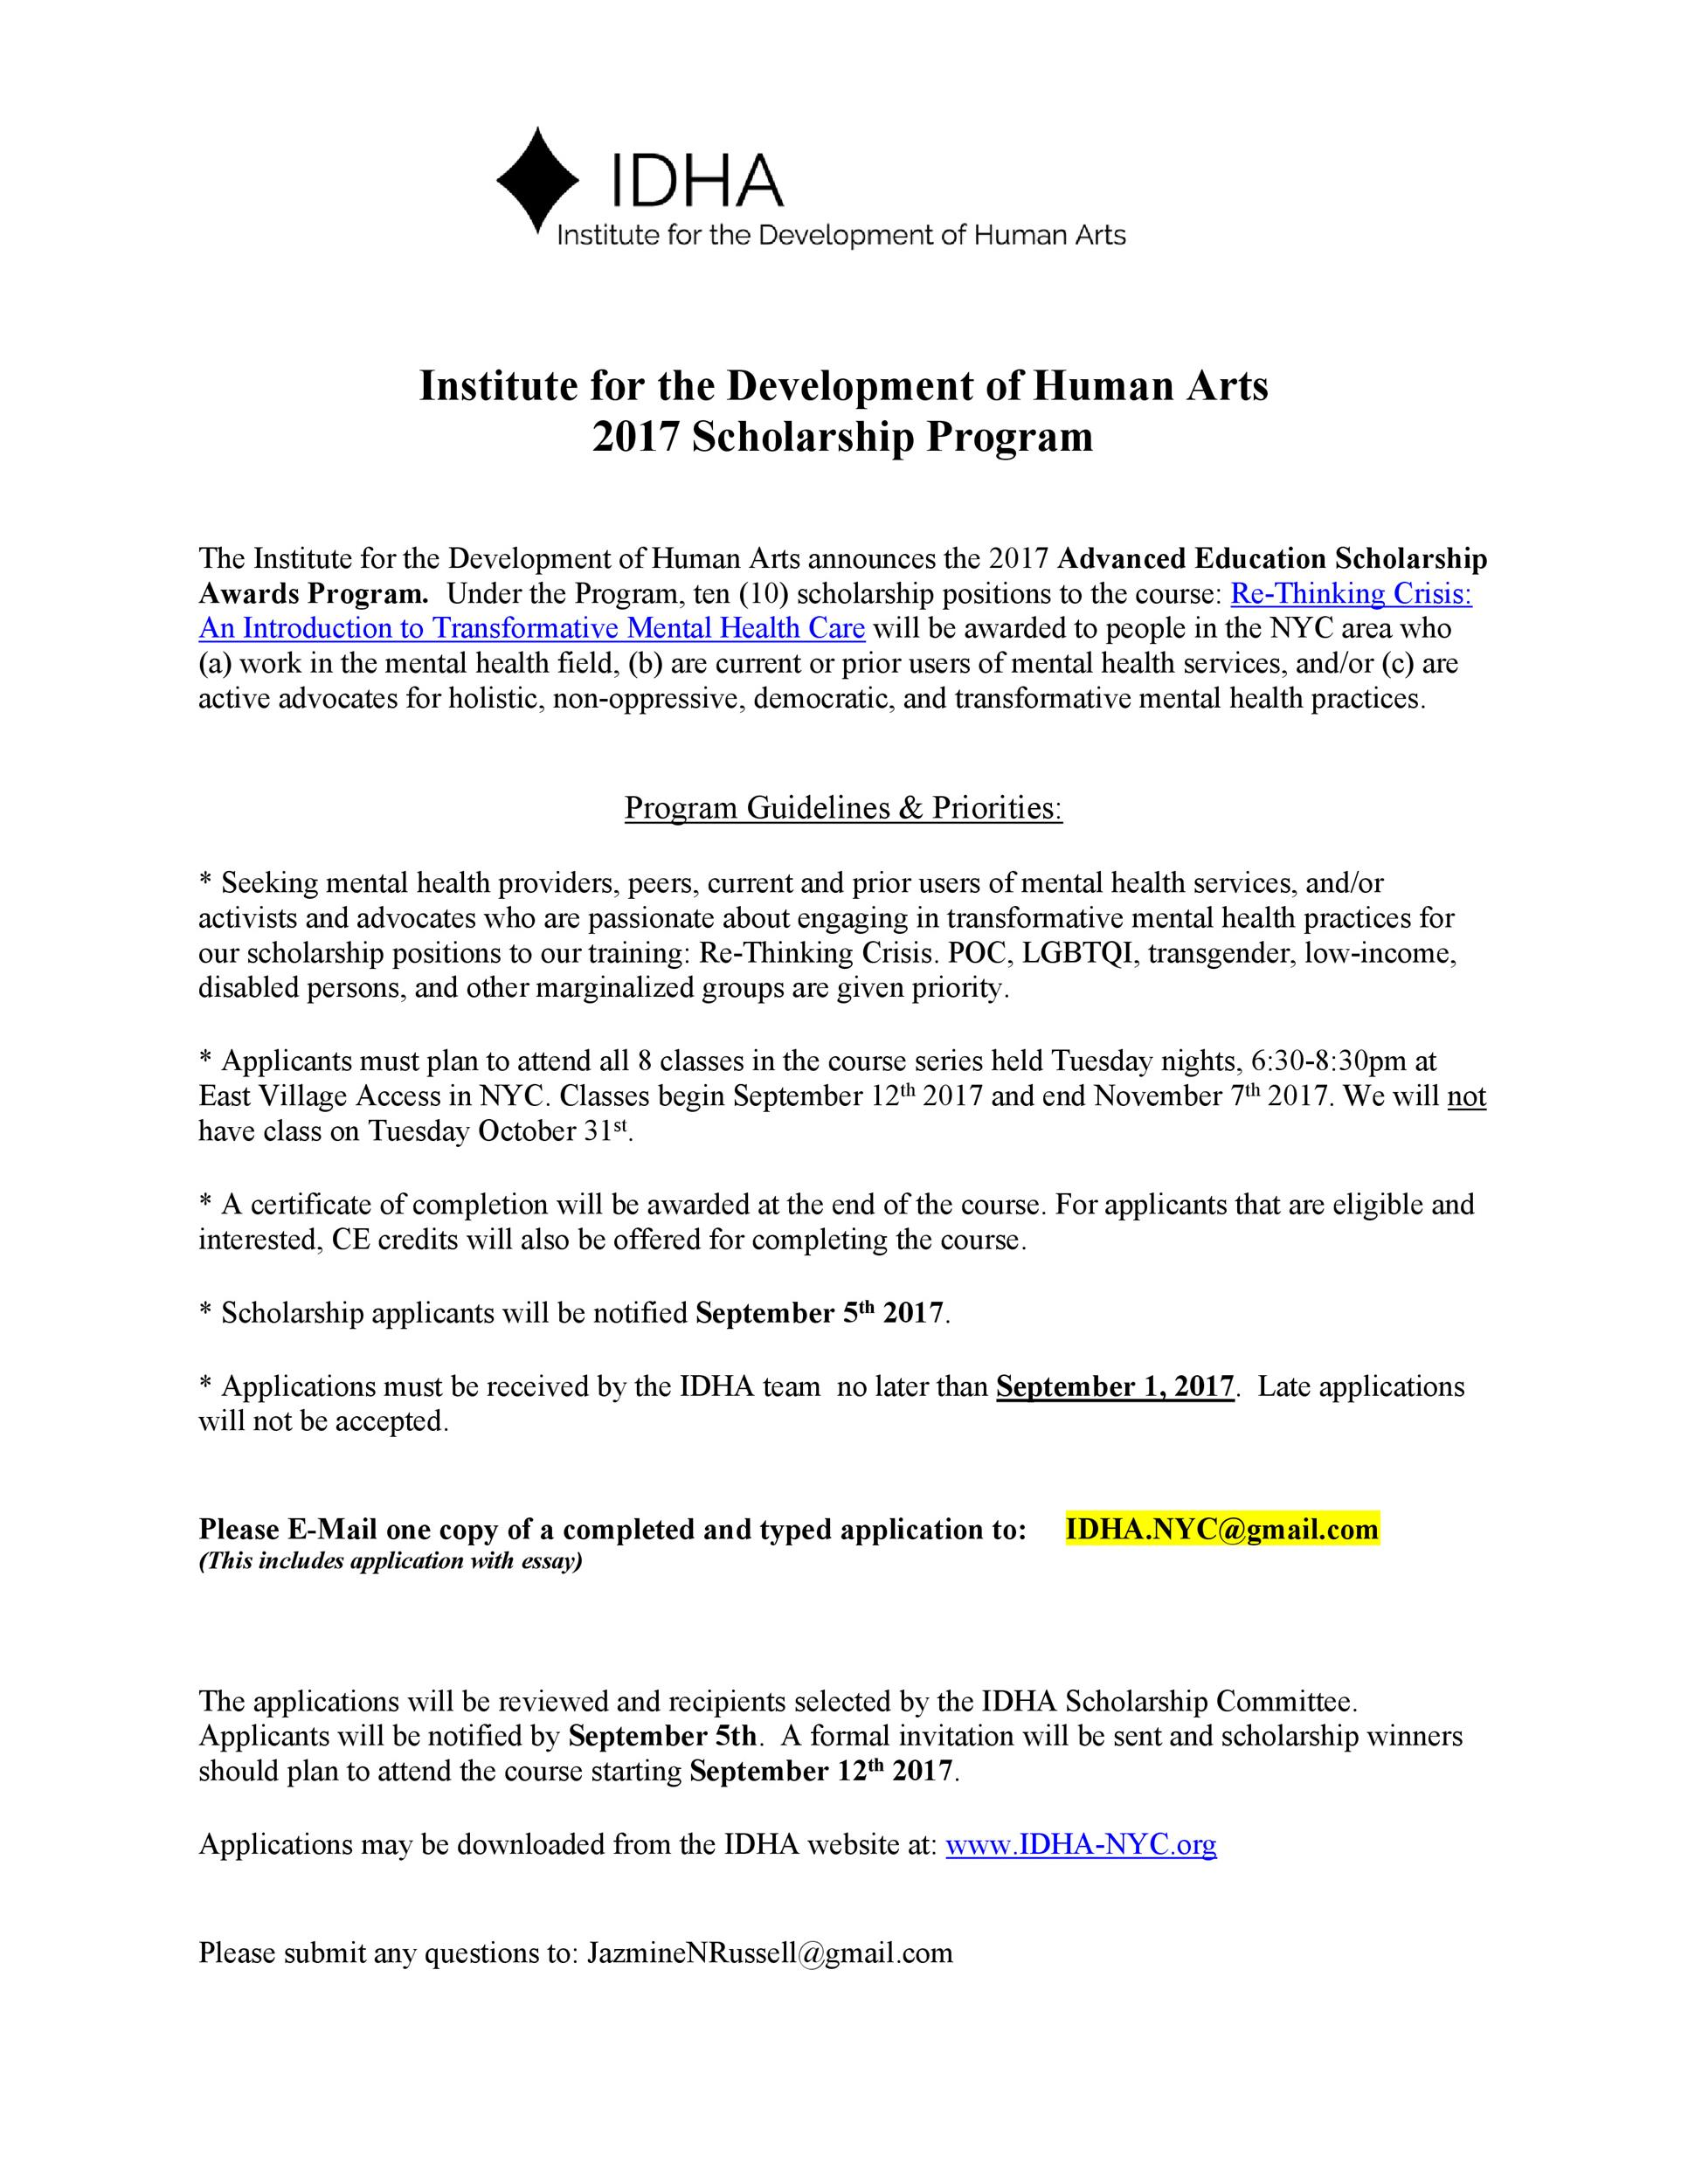 Free Scholarship Application Template 09